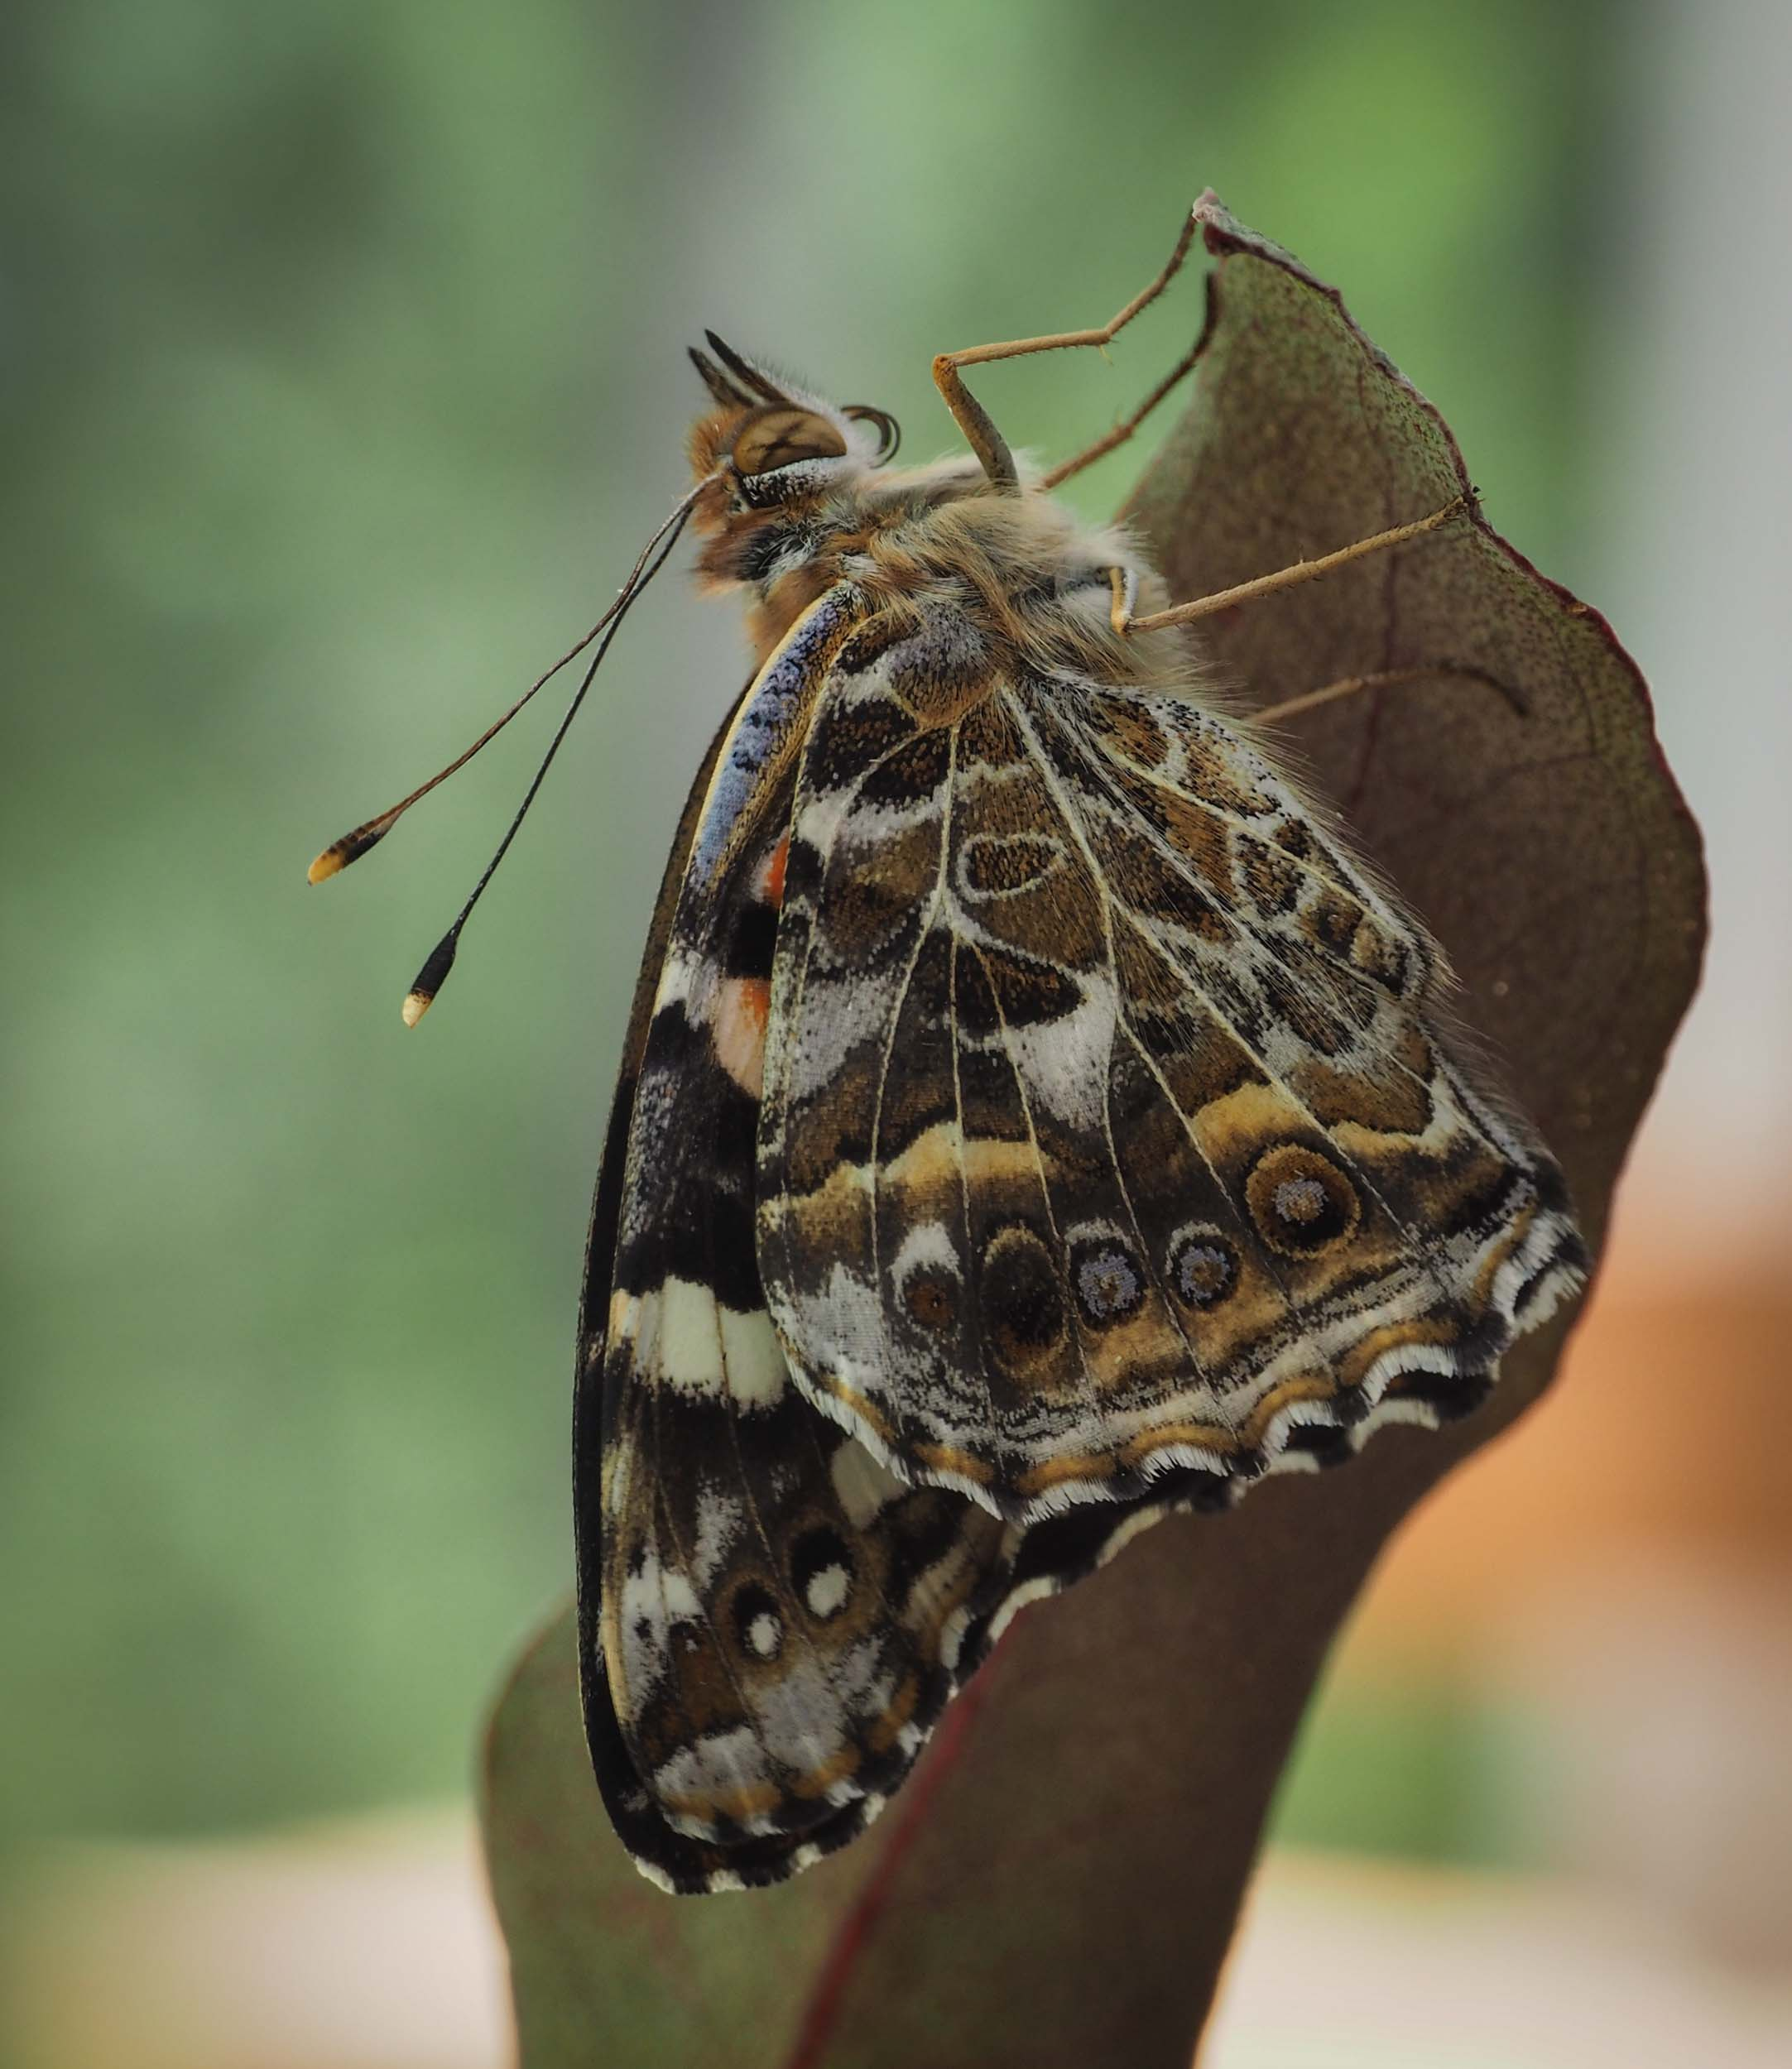 Newly eclosed  Vanessa kershawi , with wings not fully expanded.